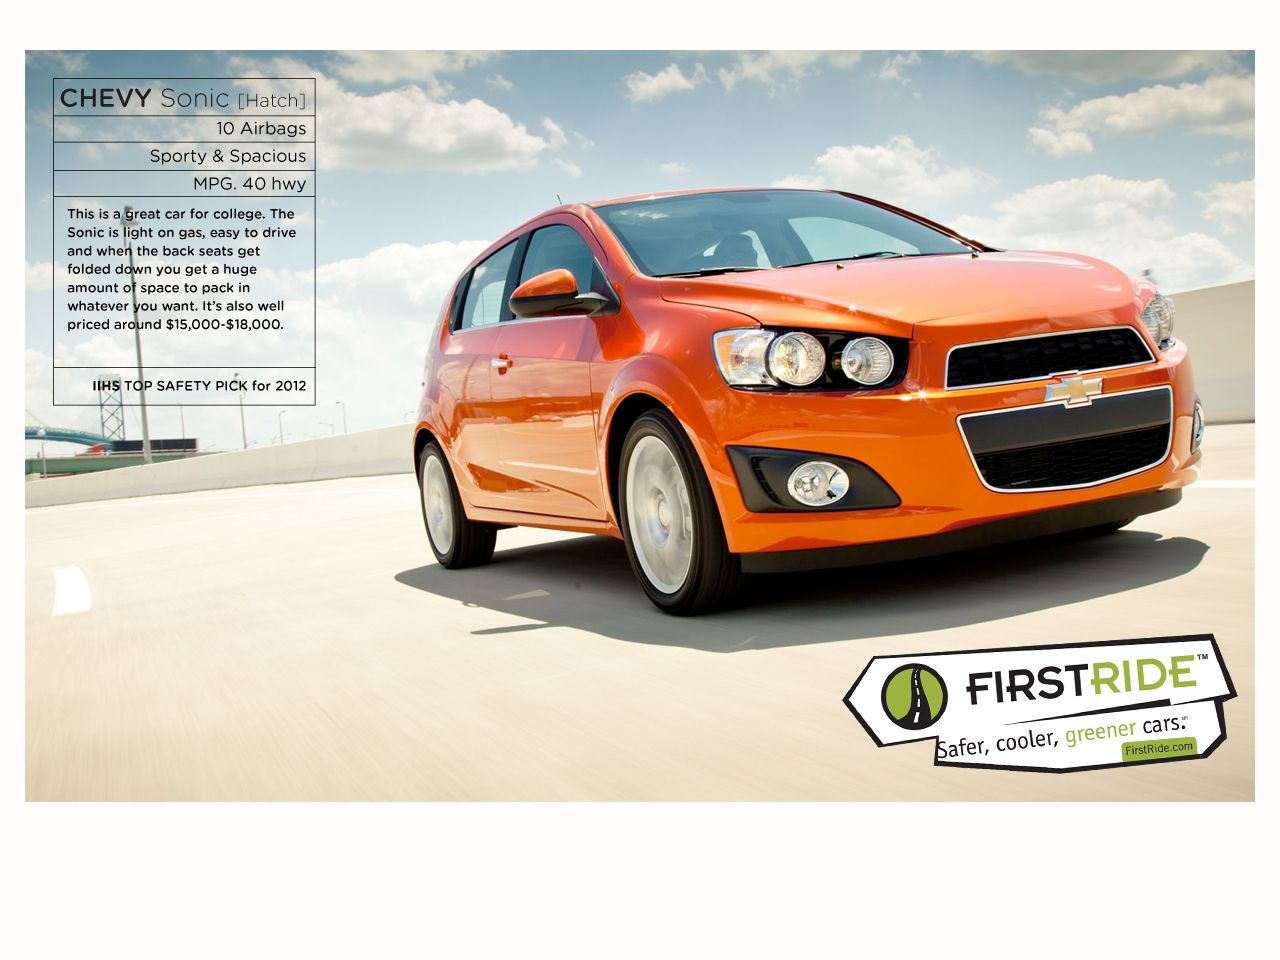 Chevy Sonic Hatch On Firstride Chevy Sonic Awesome Cool Cars